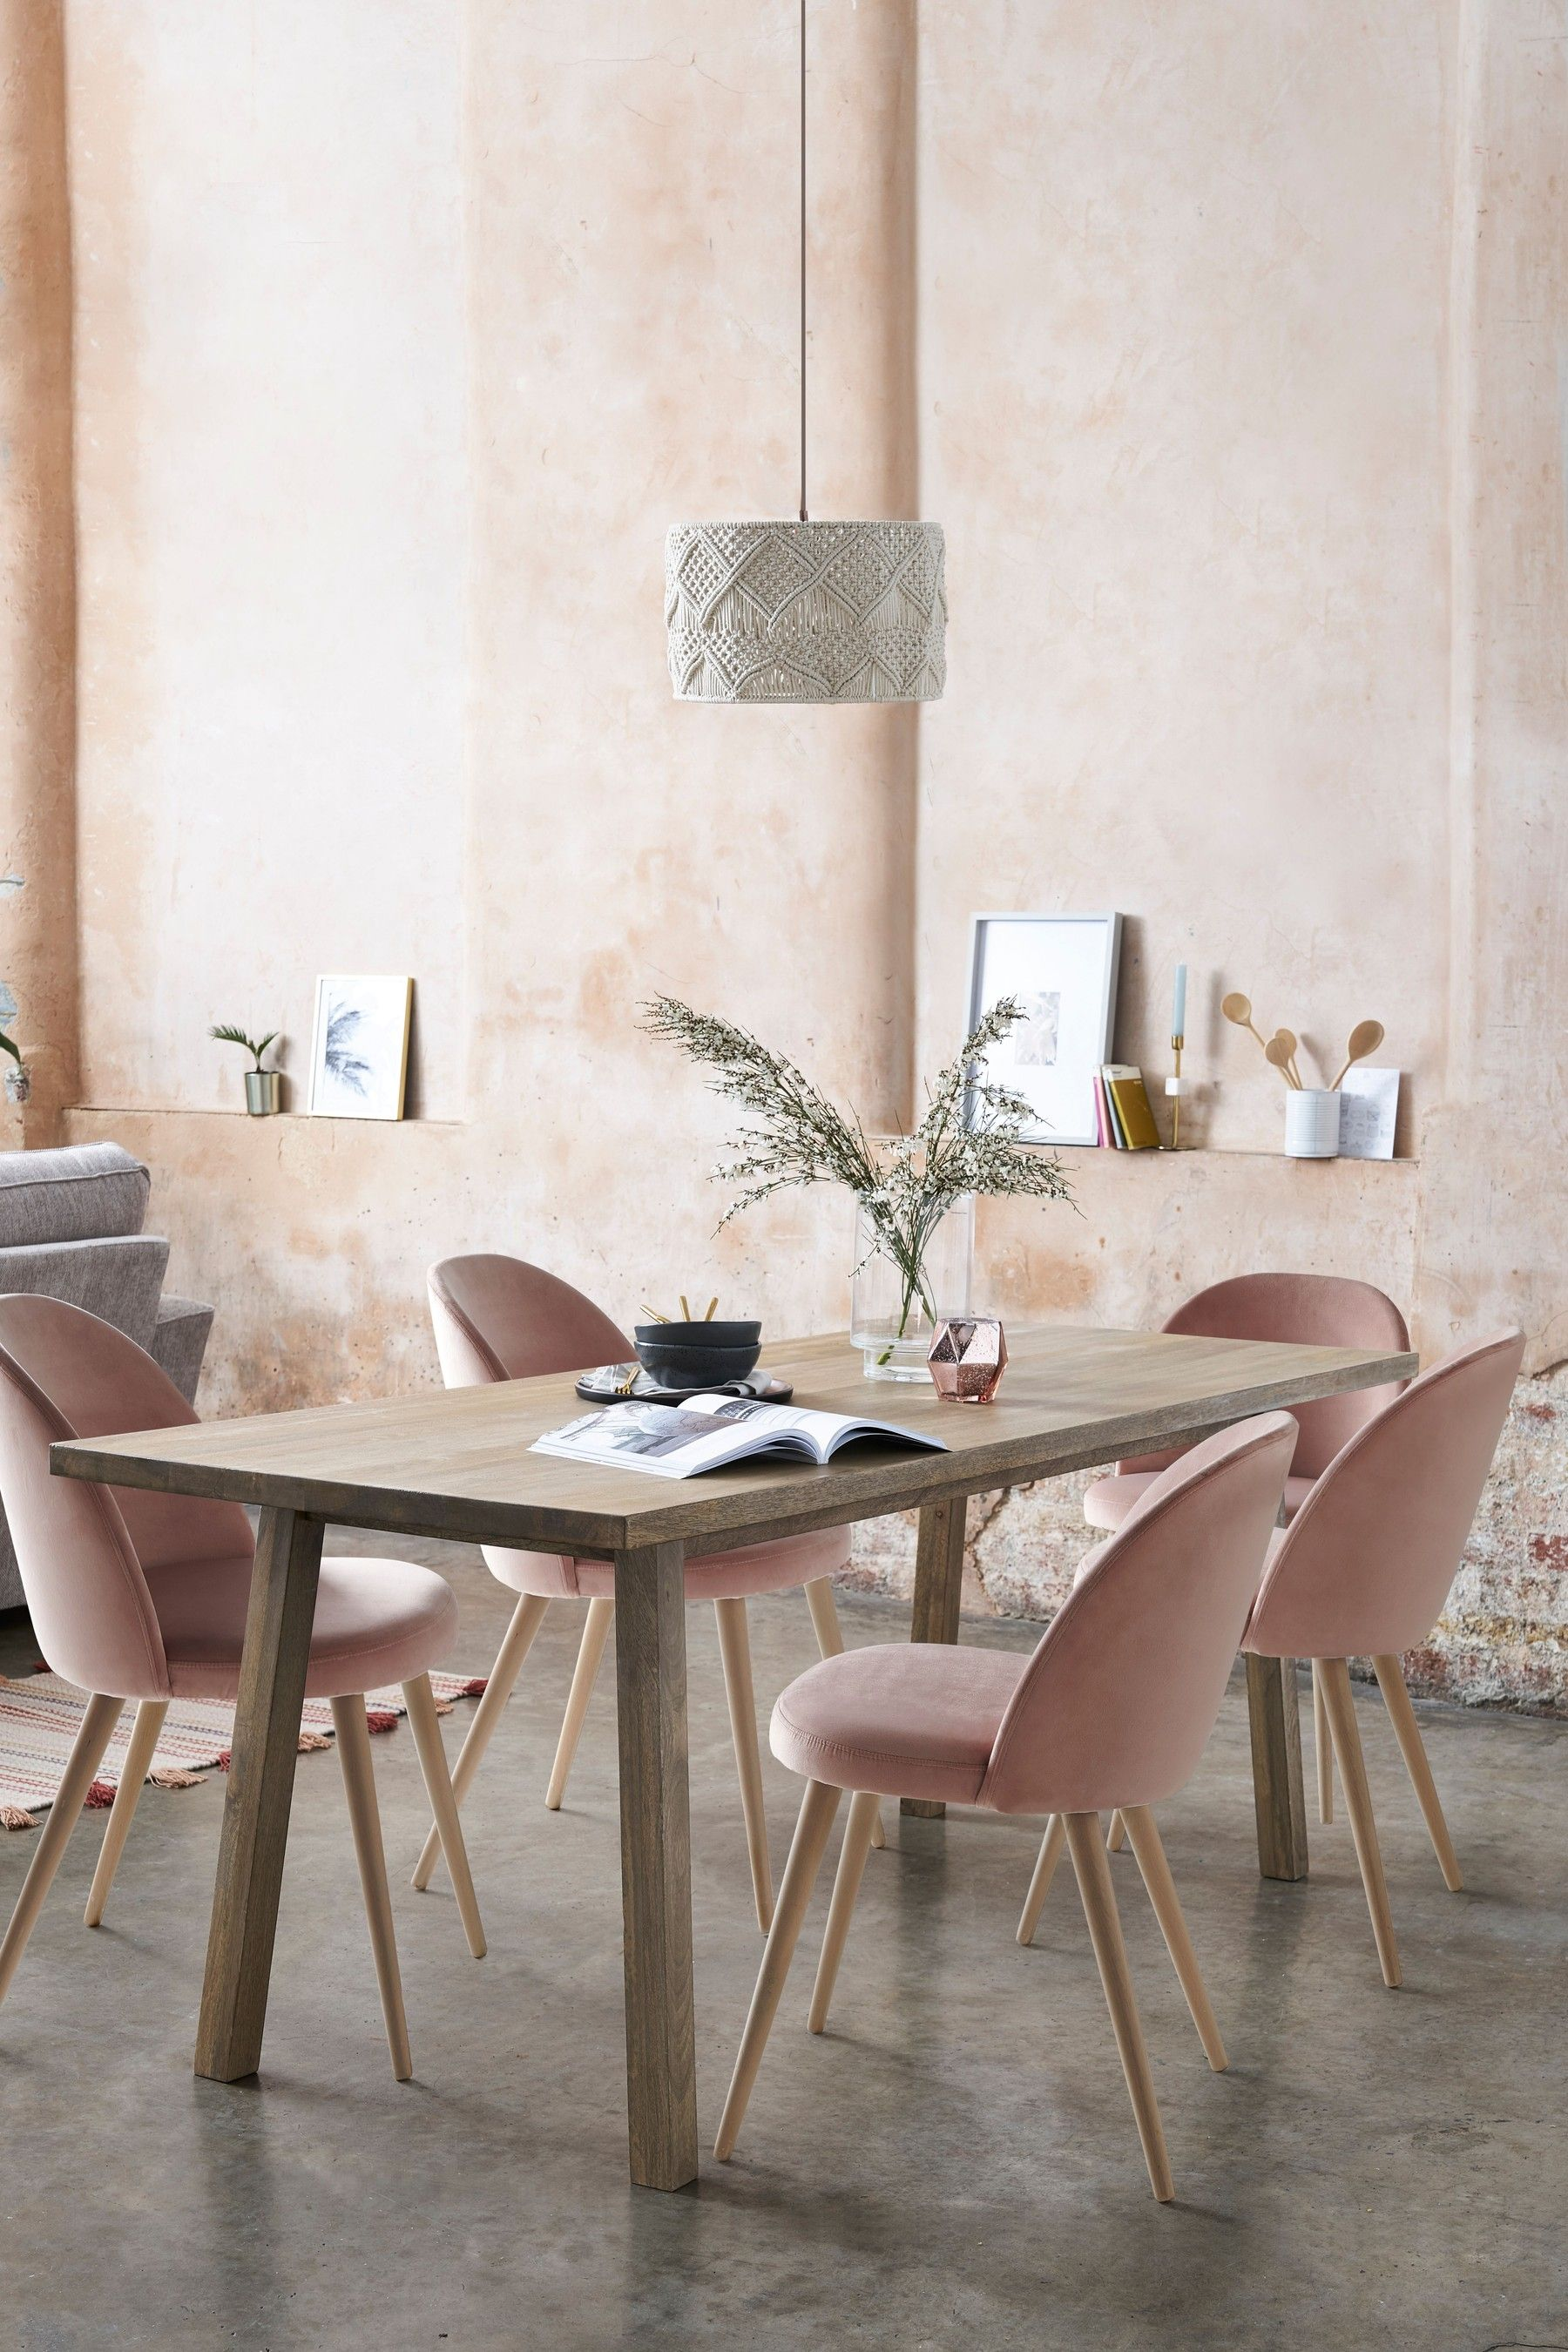 Next Safi Dining Table   Dining room furniture sets, Dining table ...